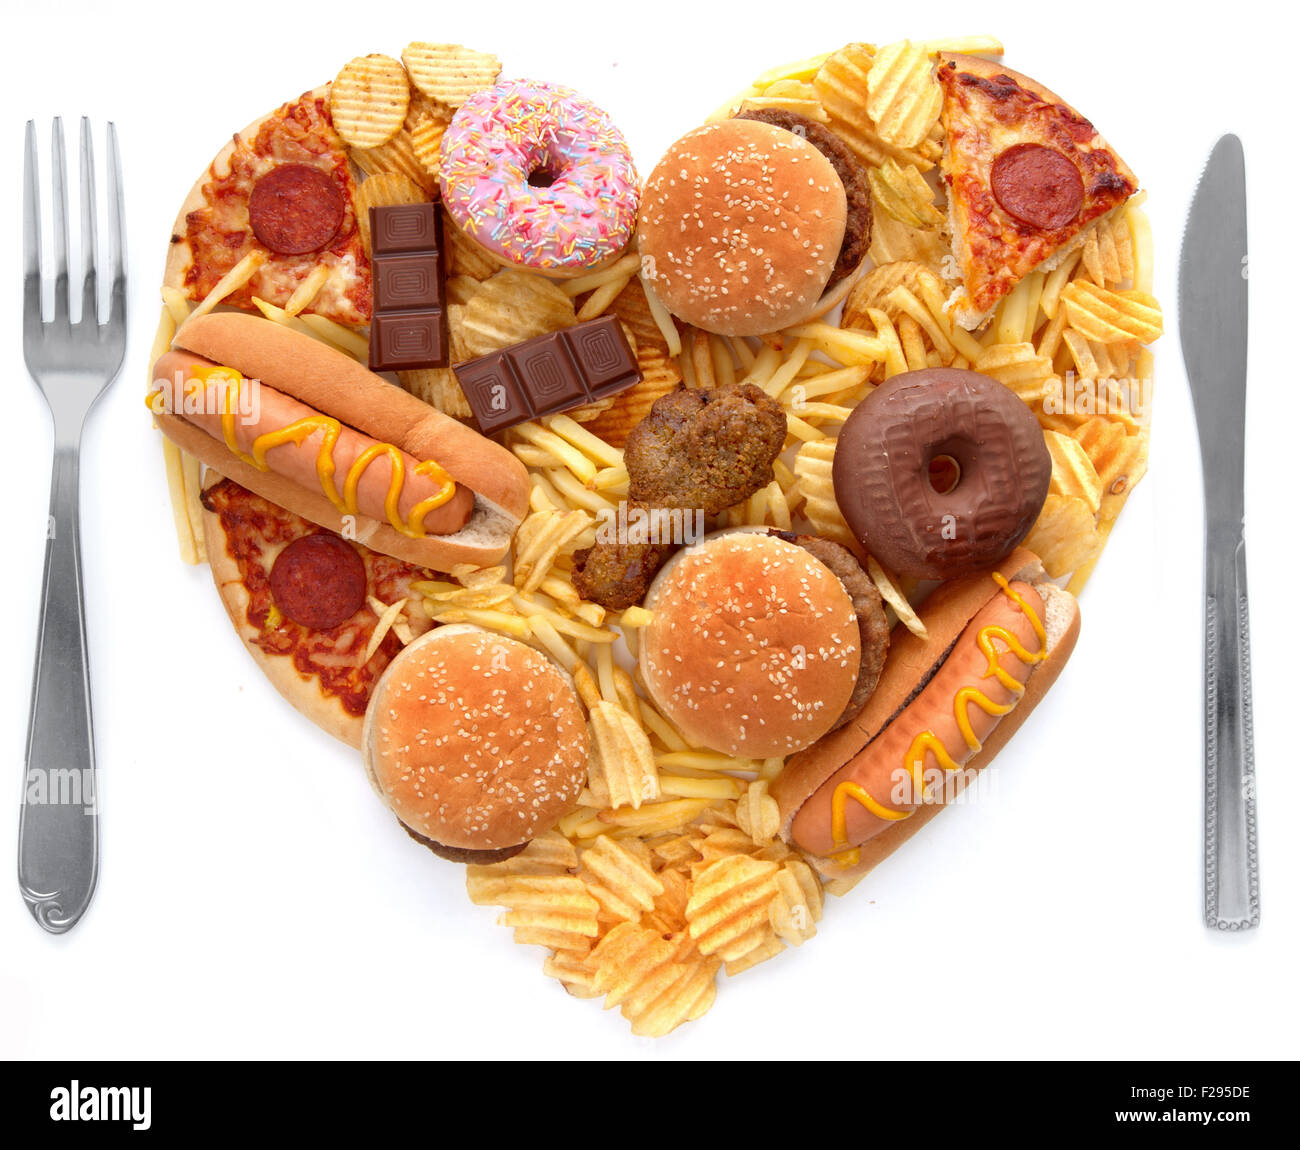 Junk food meal - Stock Image